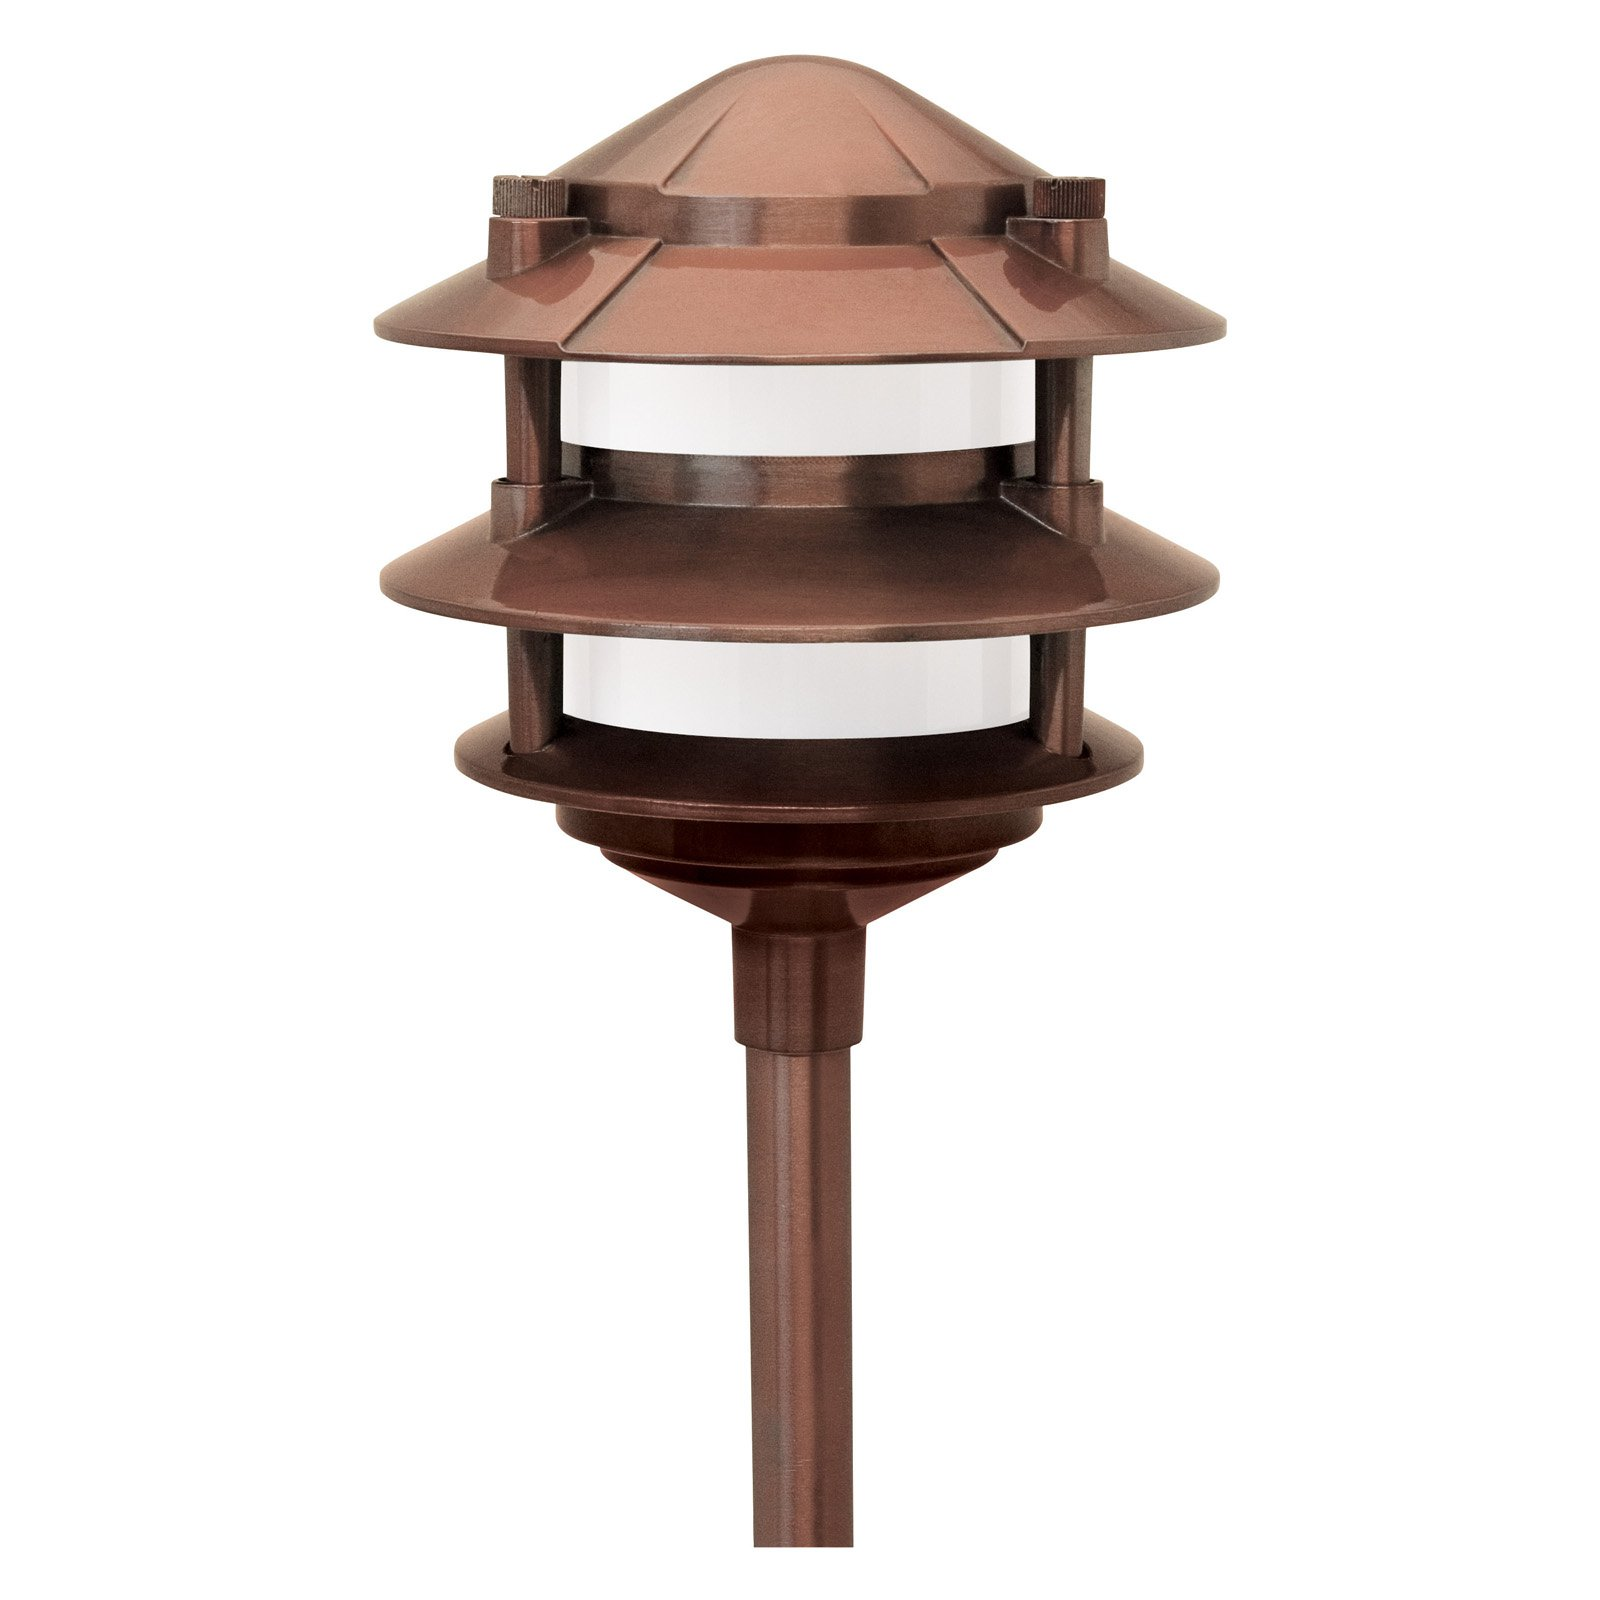 Paradise Garden Lighting Cast Aluminum 3 Tier Path Light